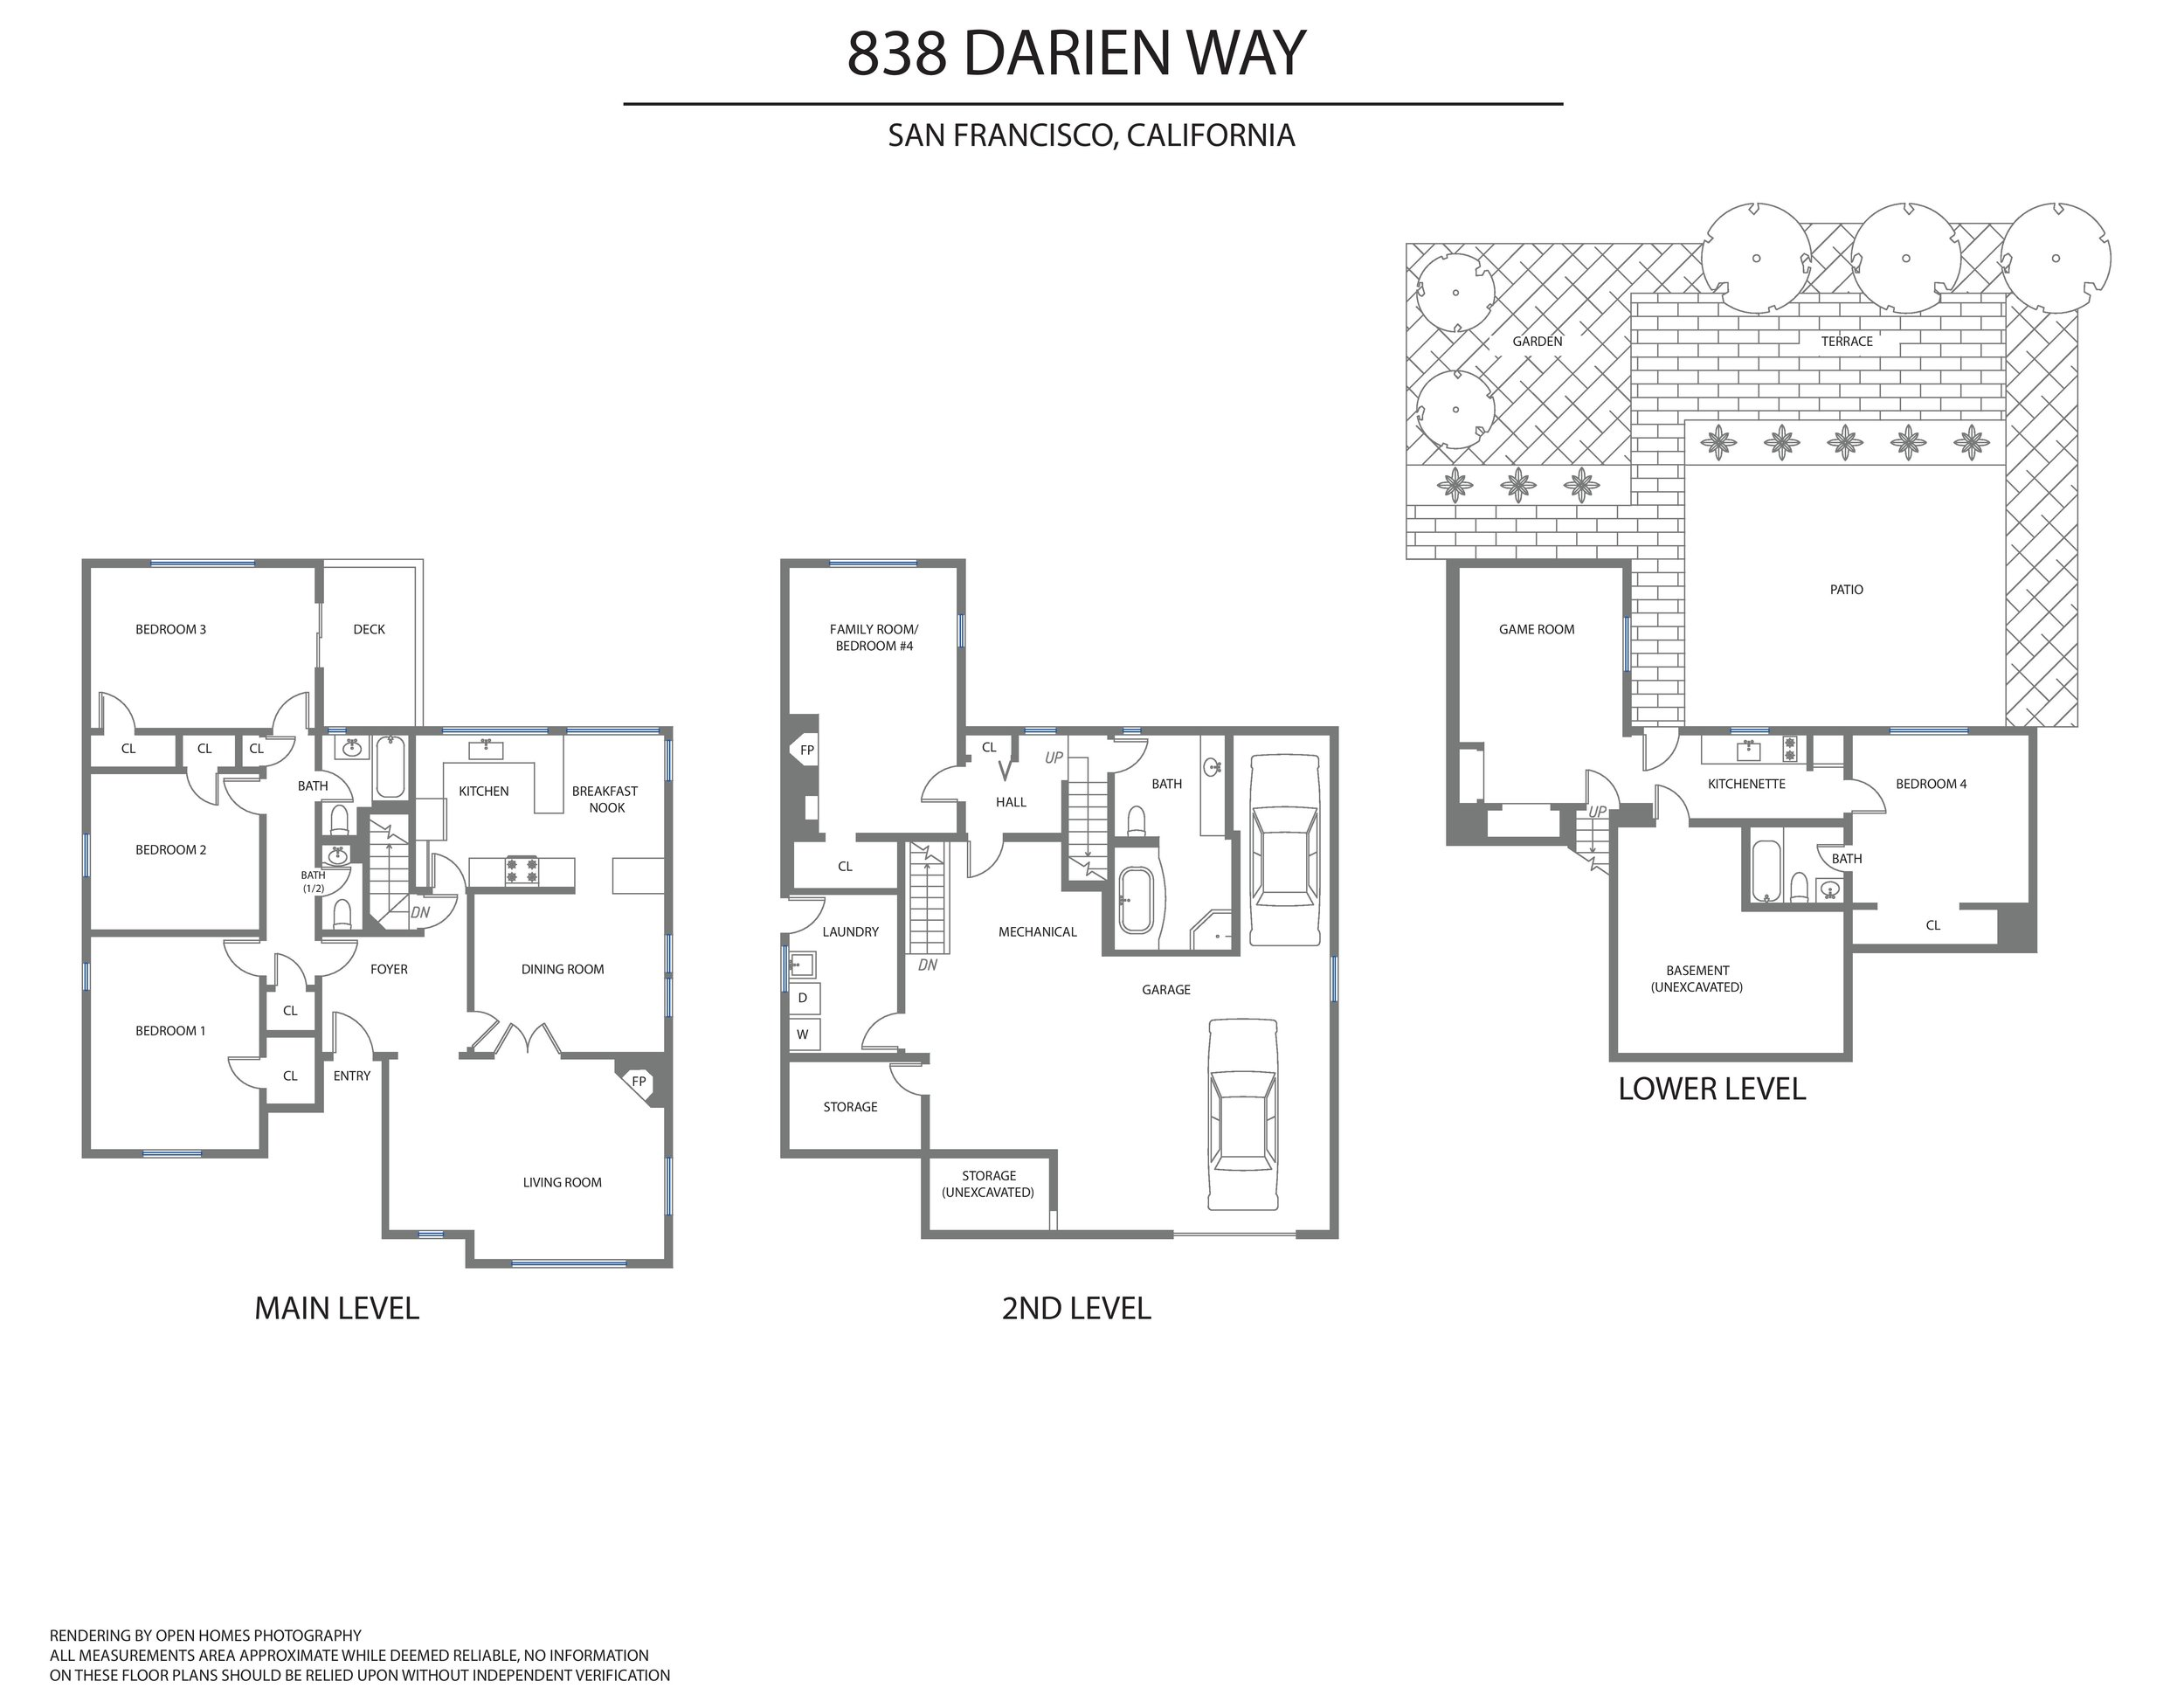 838 Darien Way, San Francisco-page-001.jpg